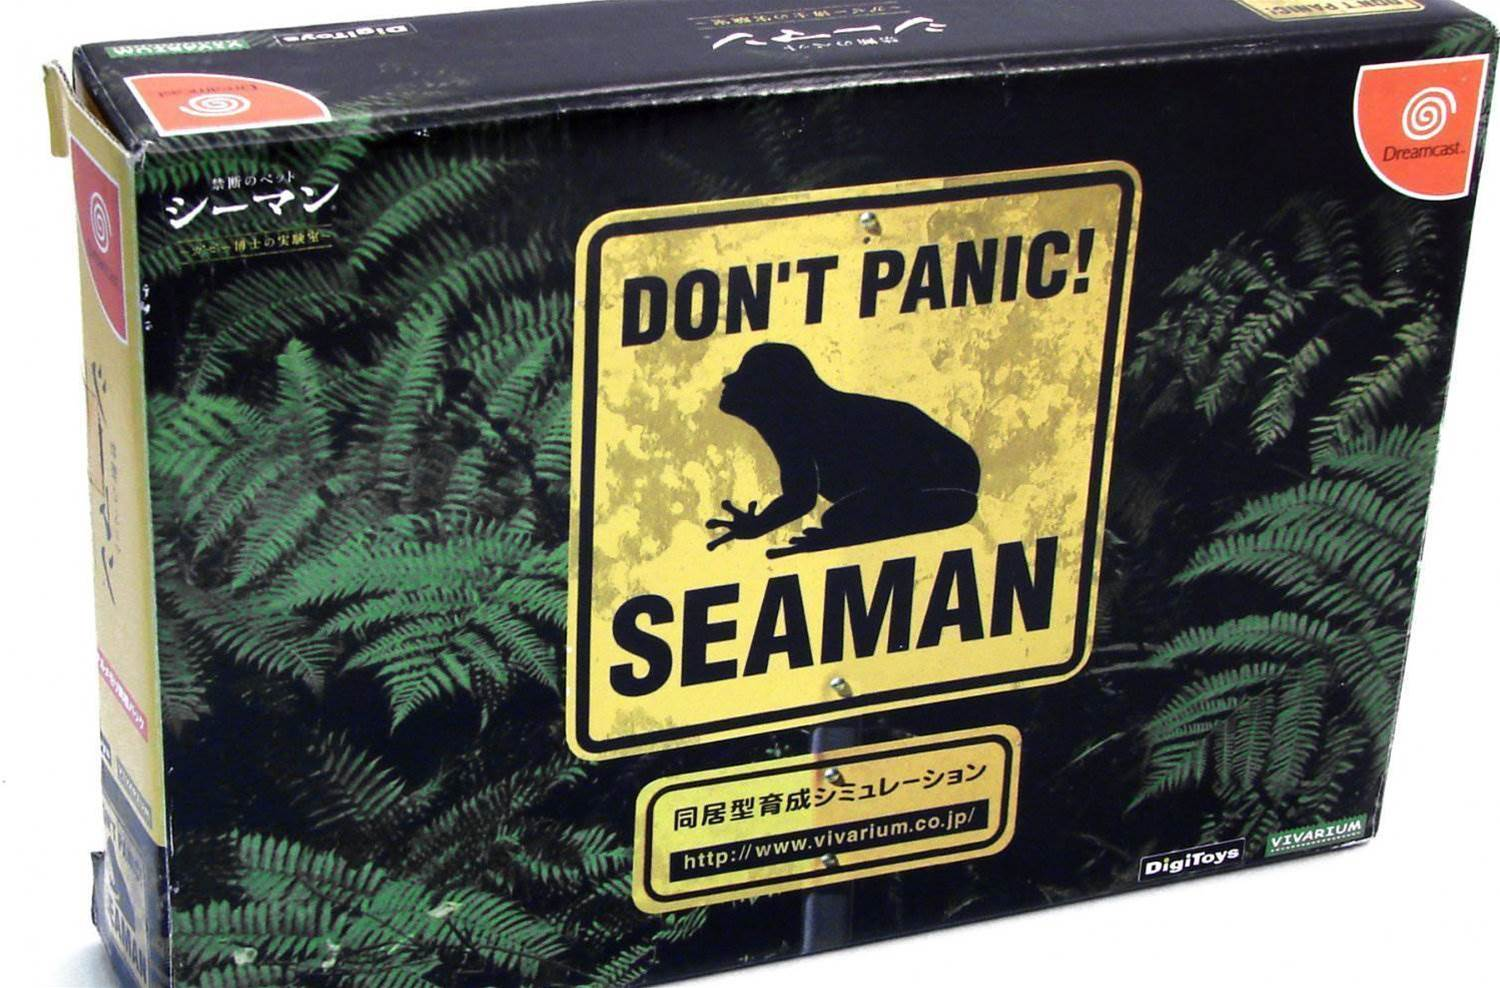 Don't panic, but a new Seaman game might happen